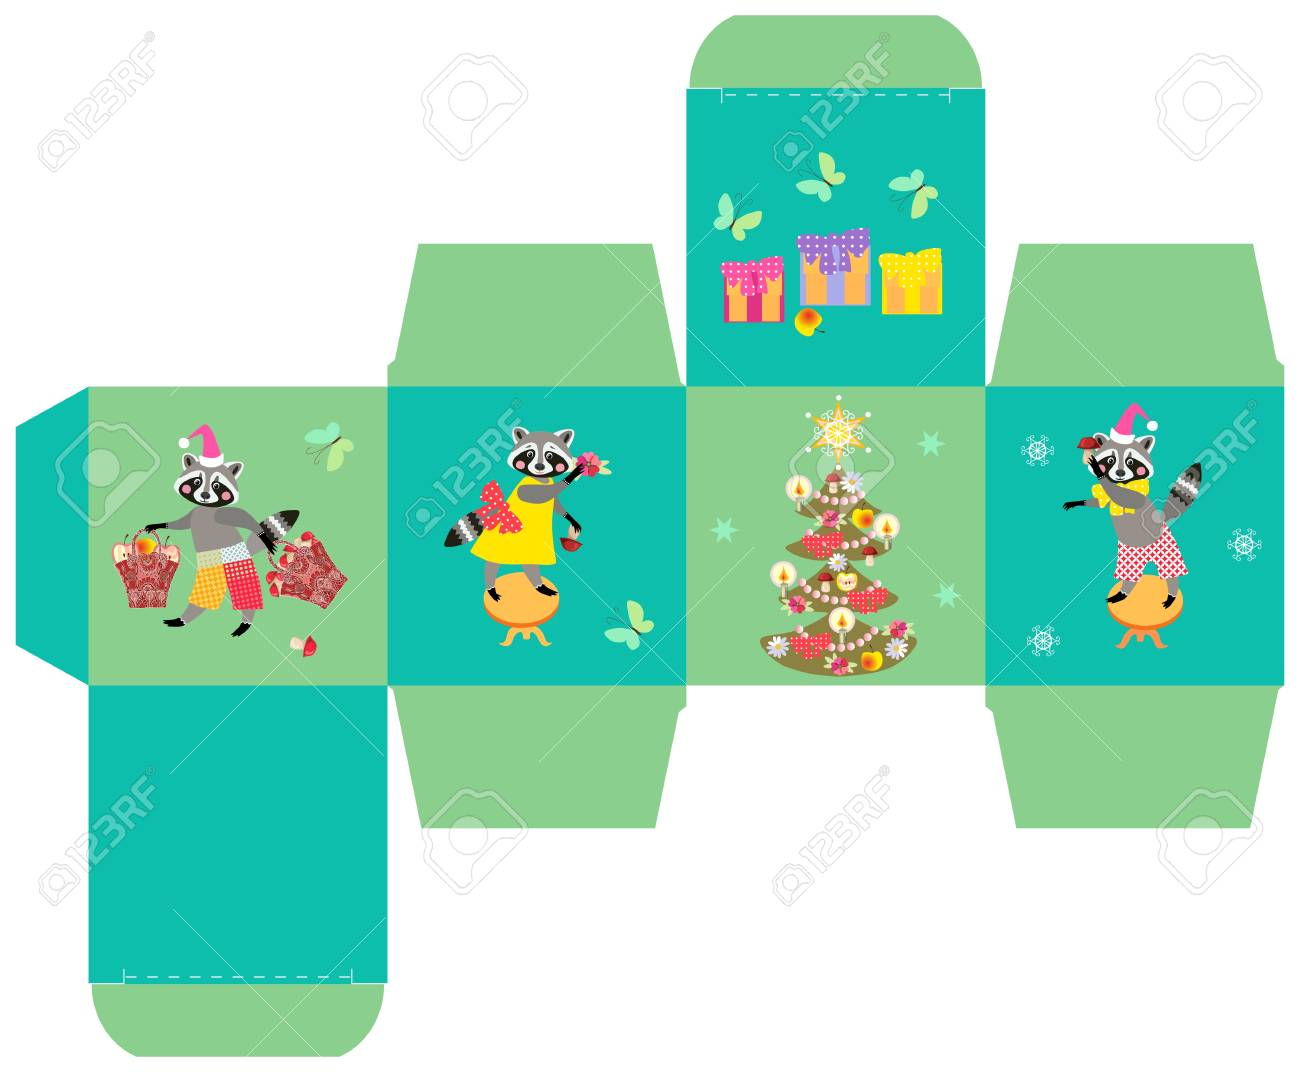 Christmas Gift Box Template.Merry Christmas Gift Box Template With Cute Funny Raccoons